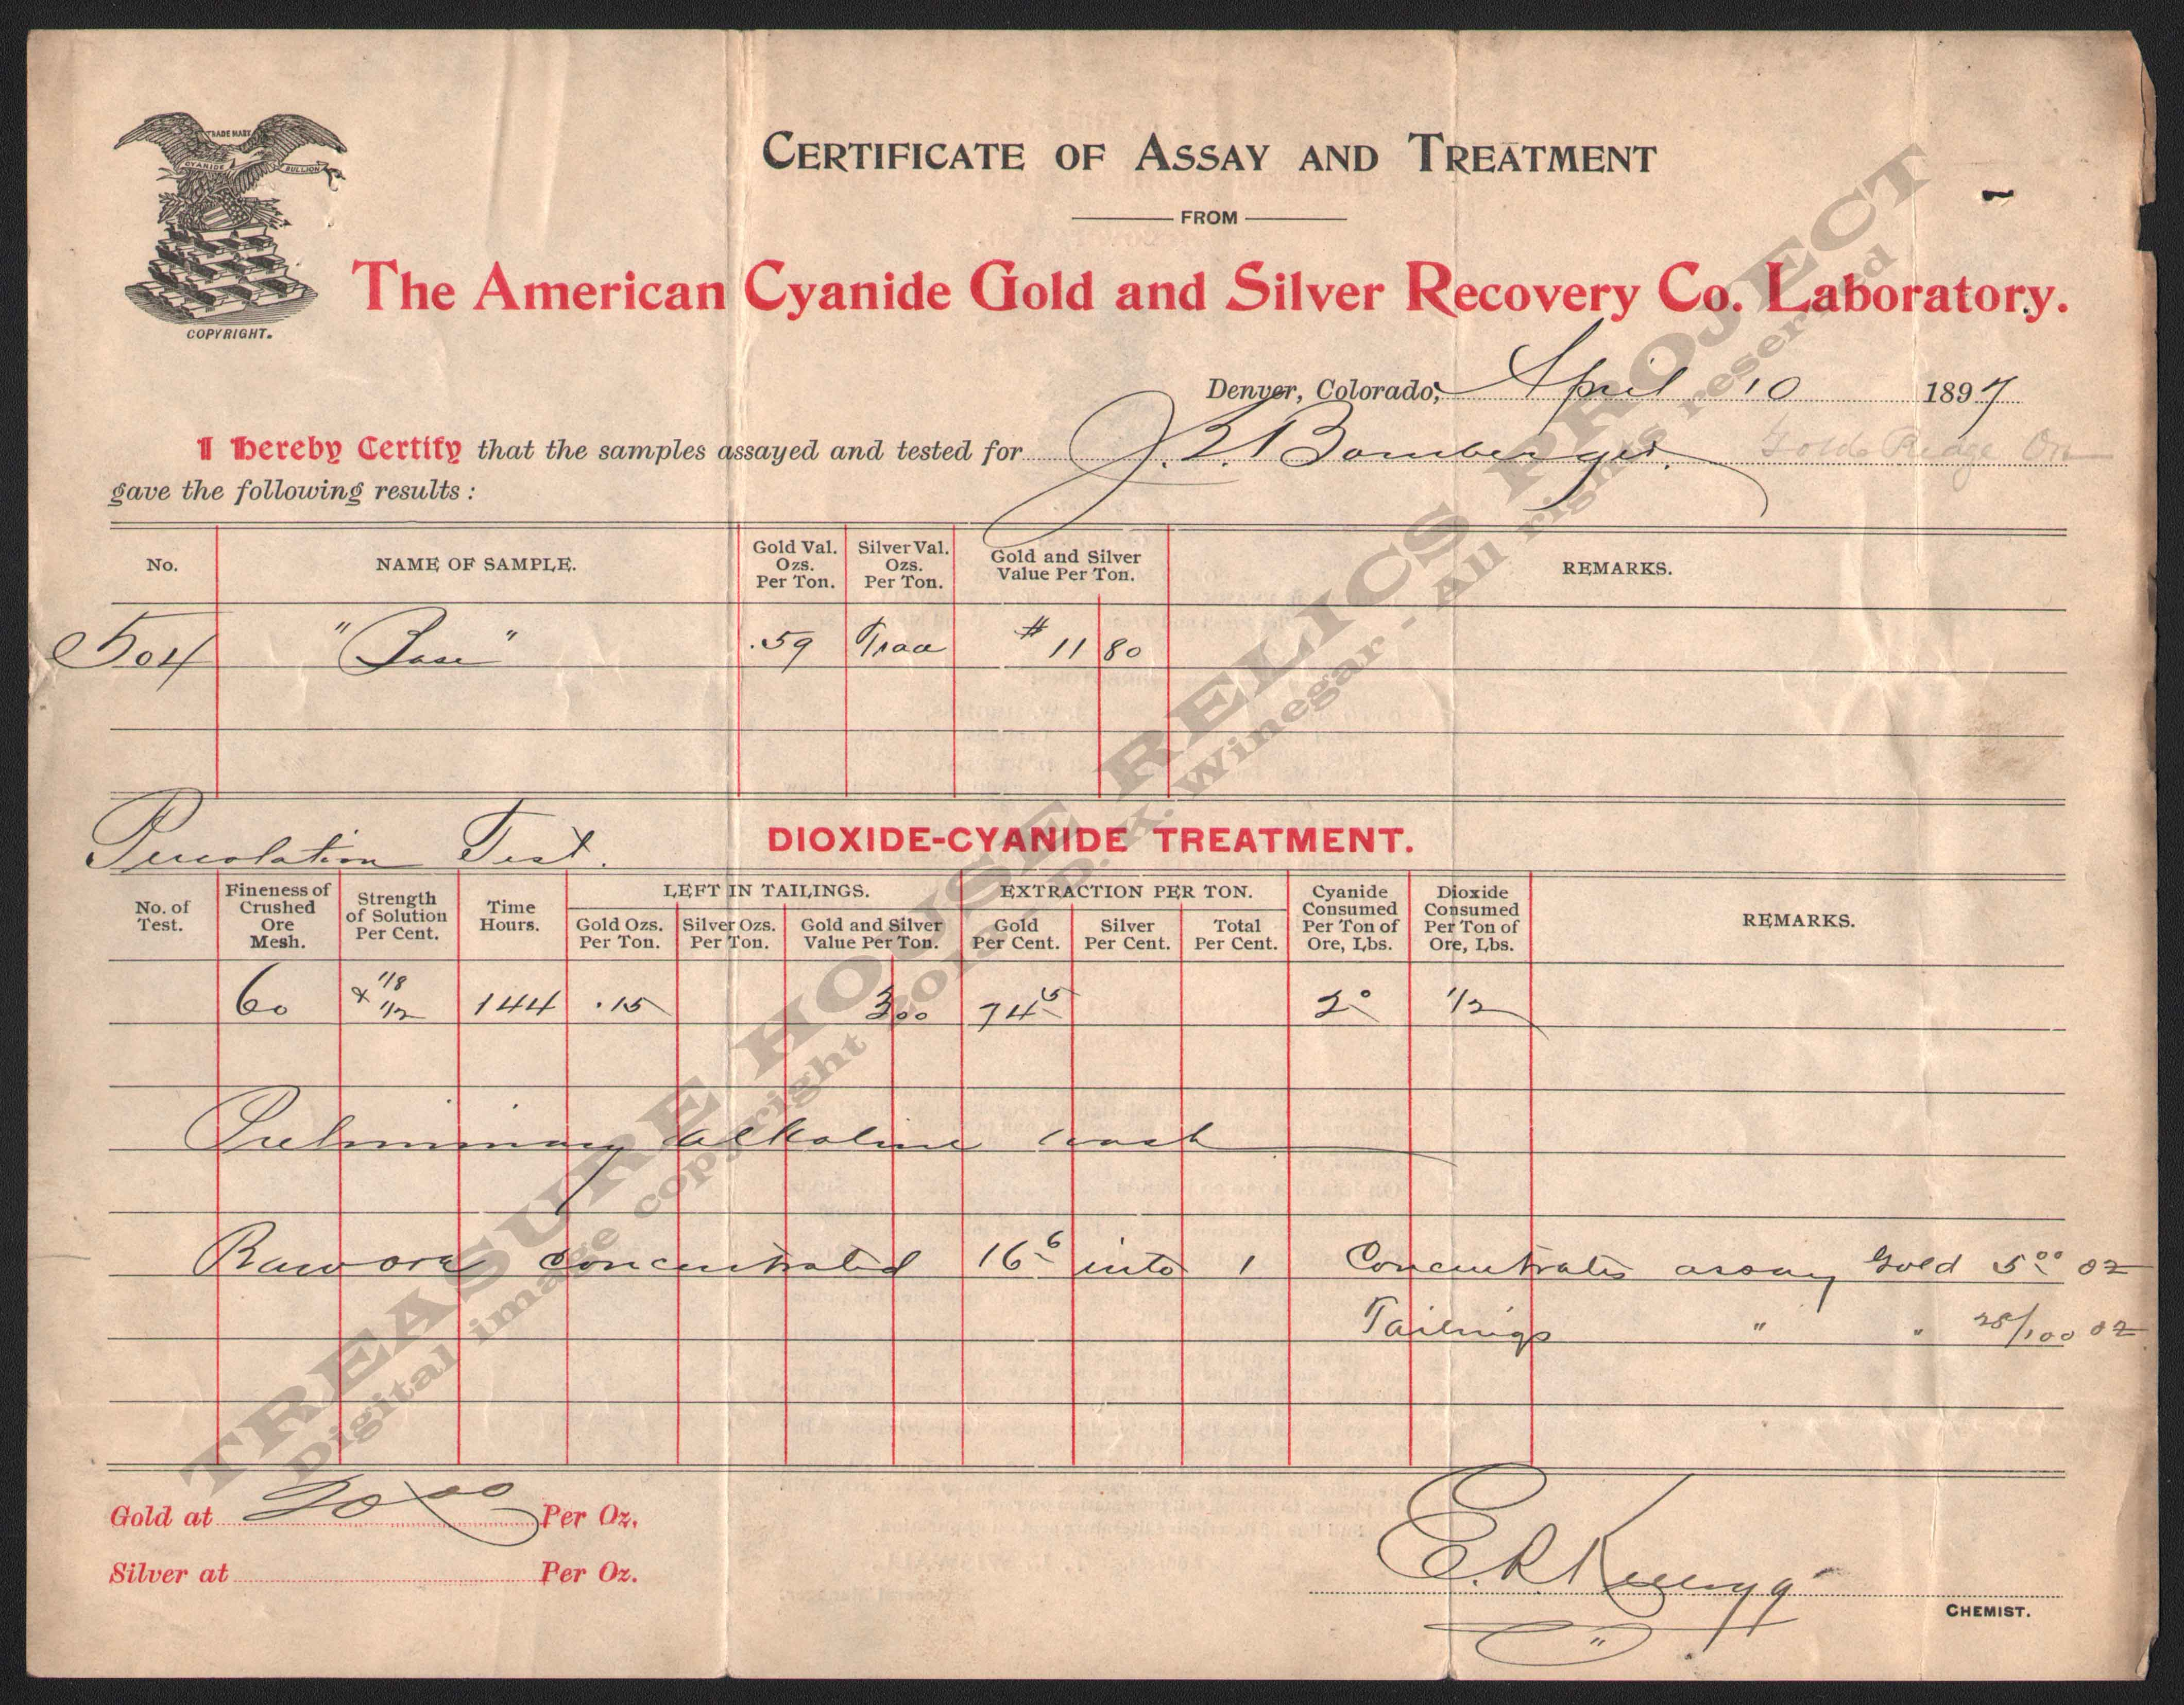 LETTERHEAD/ASSAY_AMERICAN_CYANIDE_GOLD_AND_SILVER_RECOVERY_COMPANY_LABORATORY_DENVER_COLORADO_1897_4_10_FRONT_DSW_323_400_CROP_EMBOSS.jpg